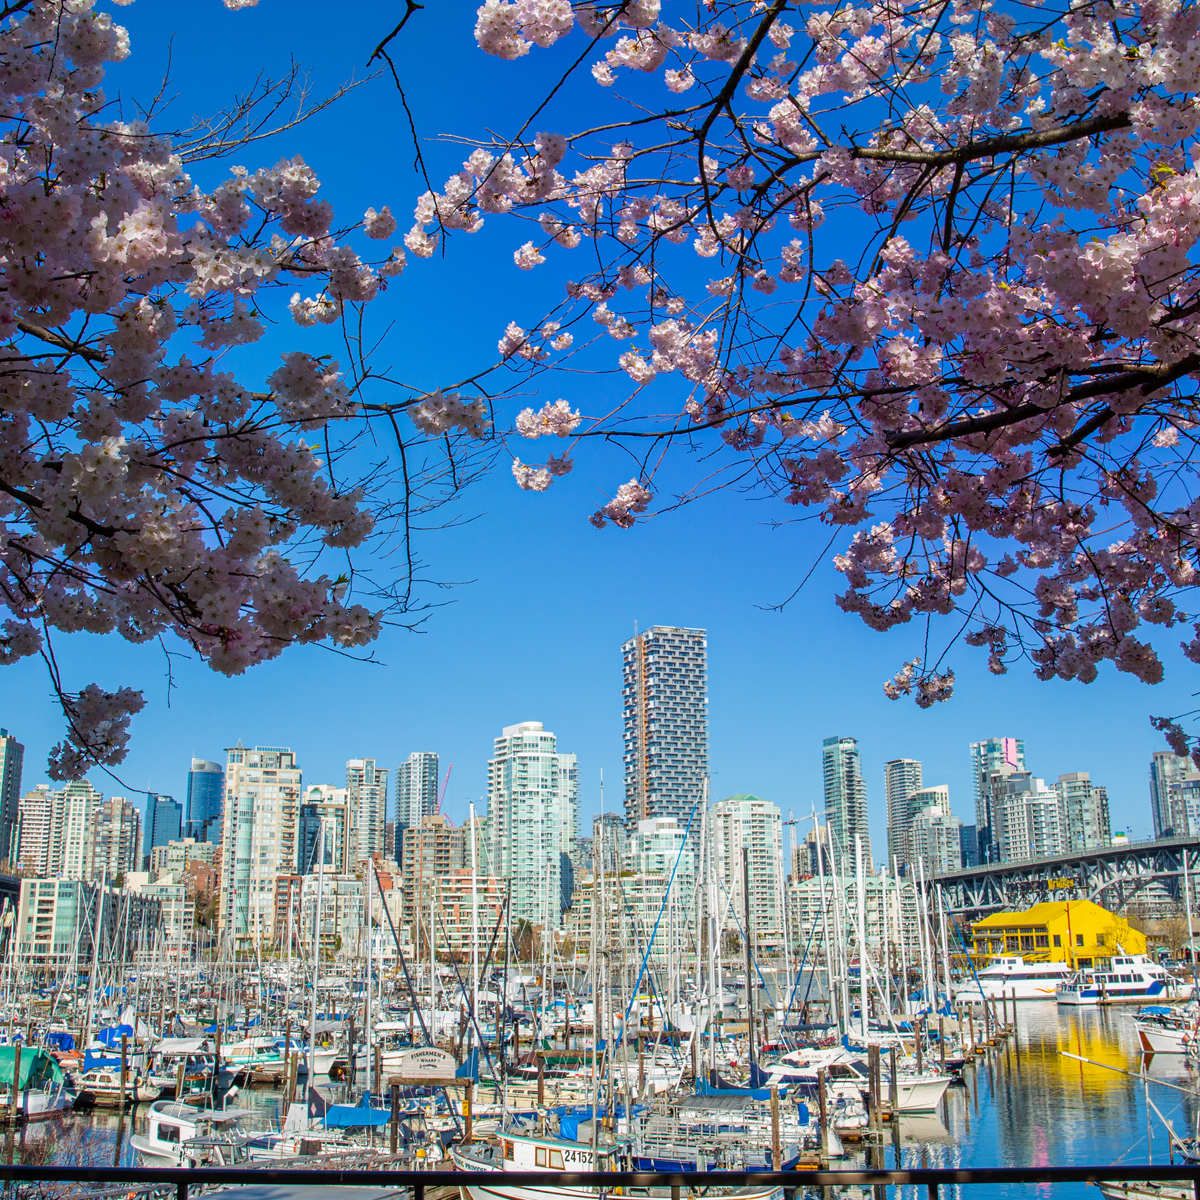 Tourism Vancouver / Vision Photography